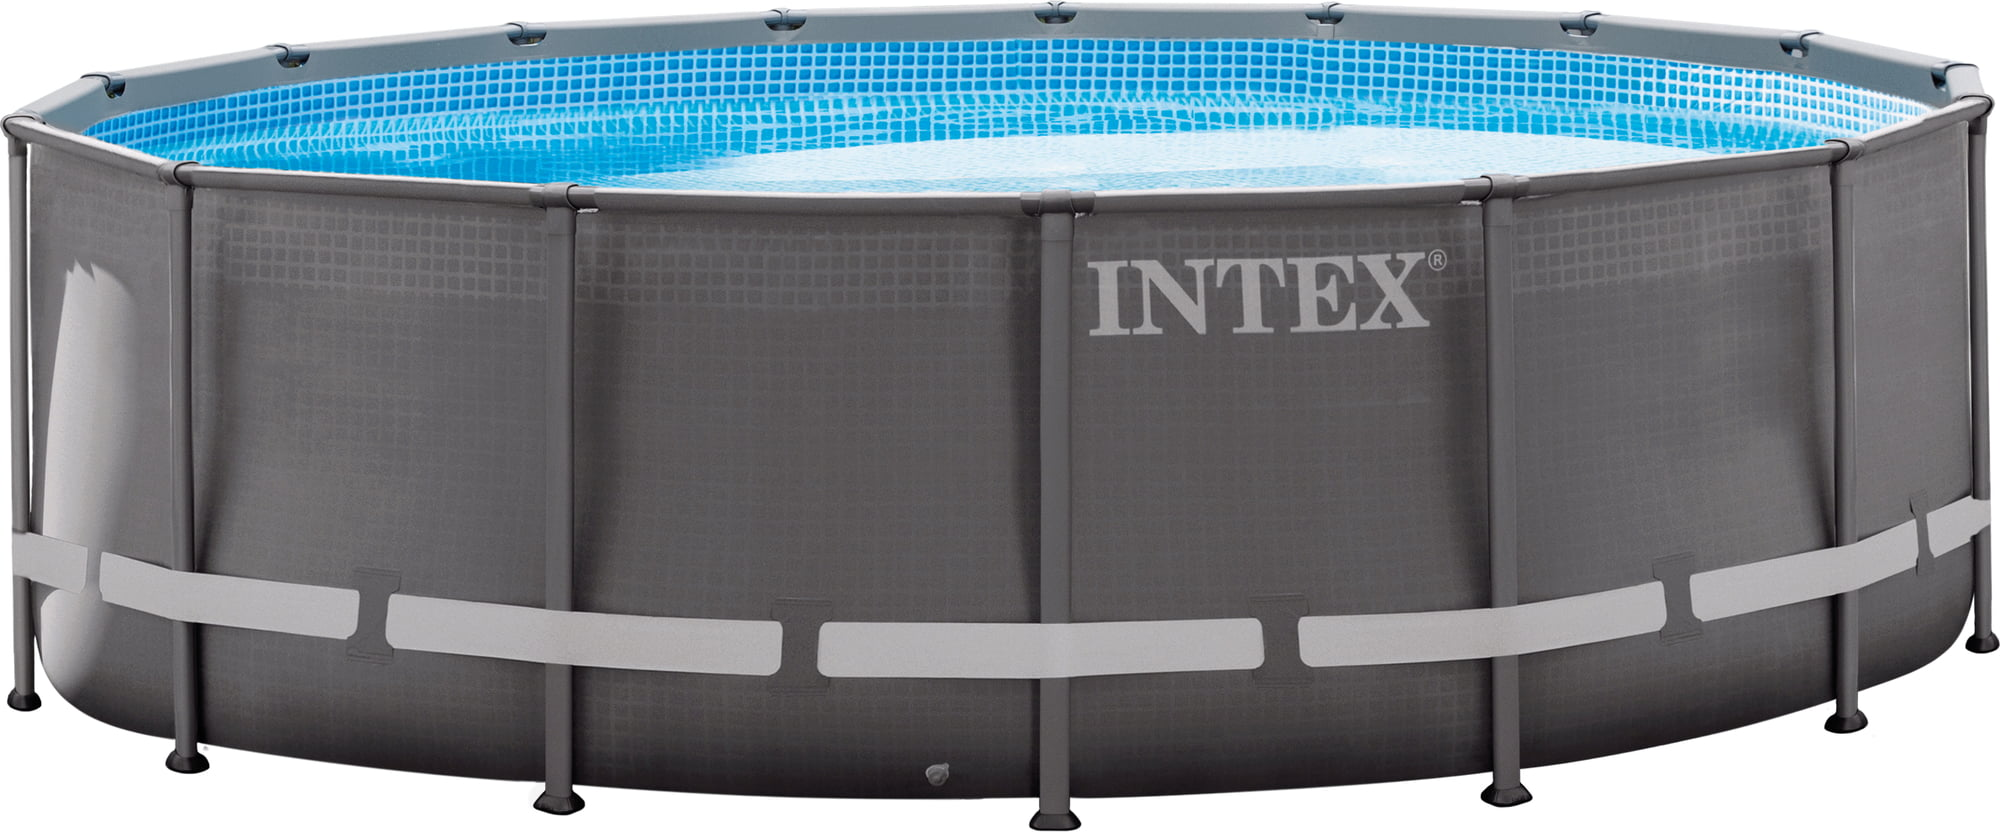 Abdeckplane Unter Pool Abdeckplane Intex Pool Top Simple Intex Pool Komplett Mit Pumpe